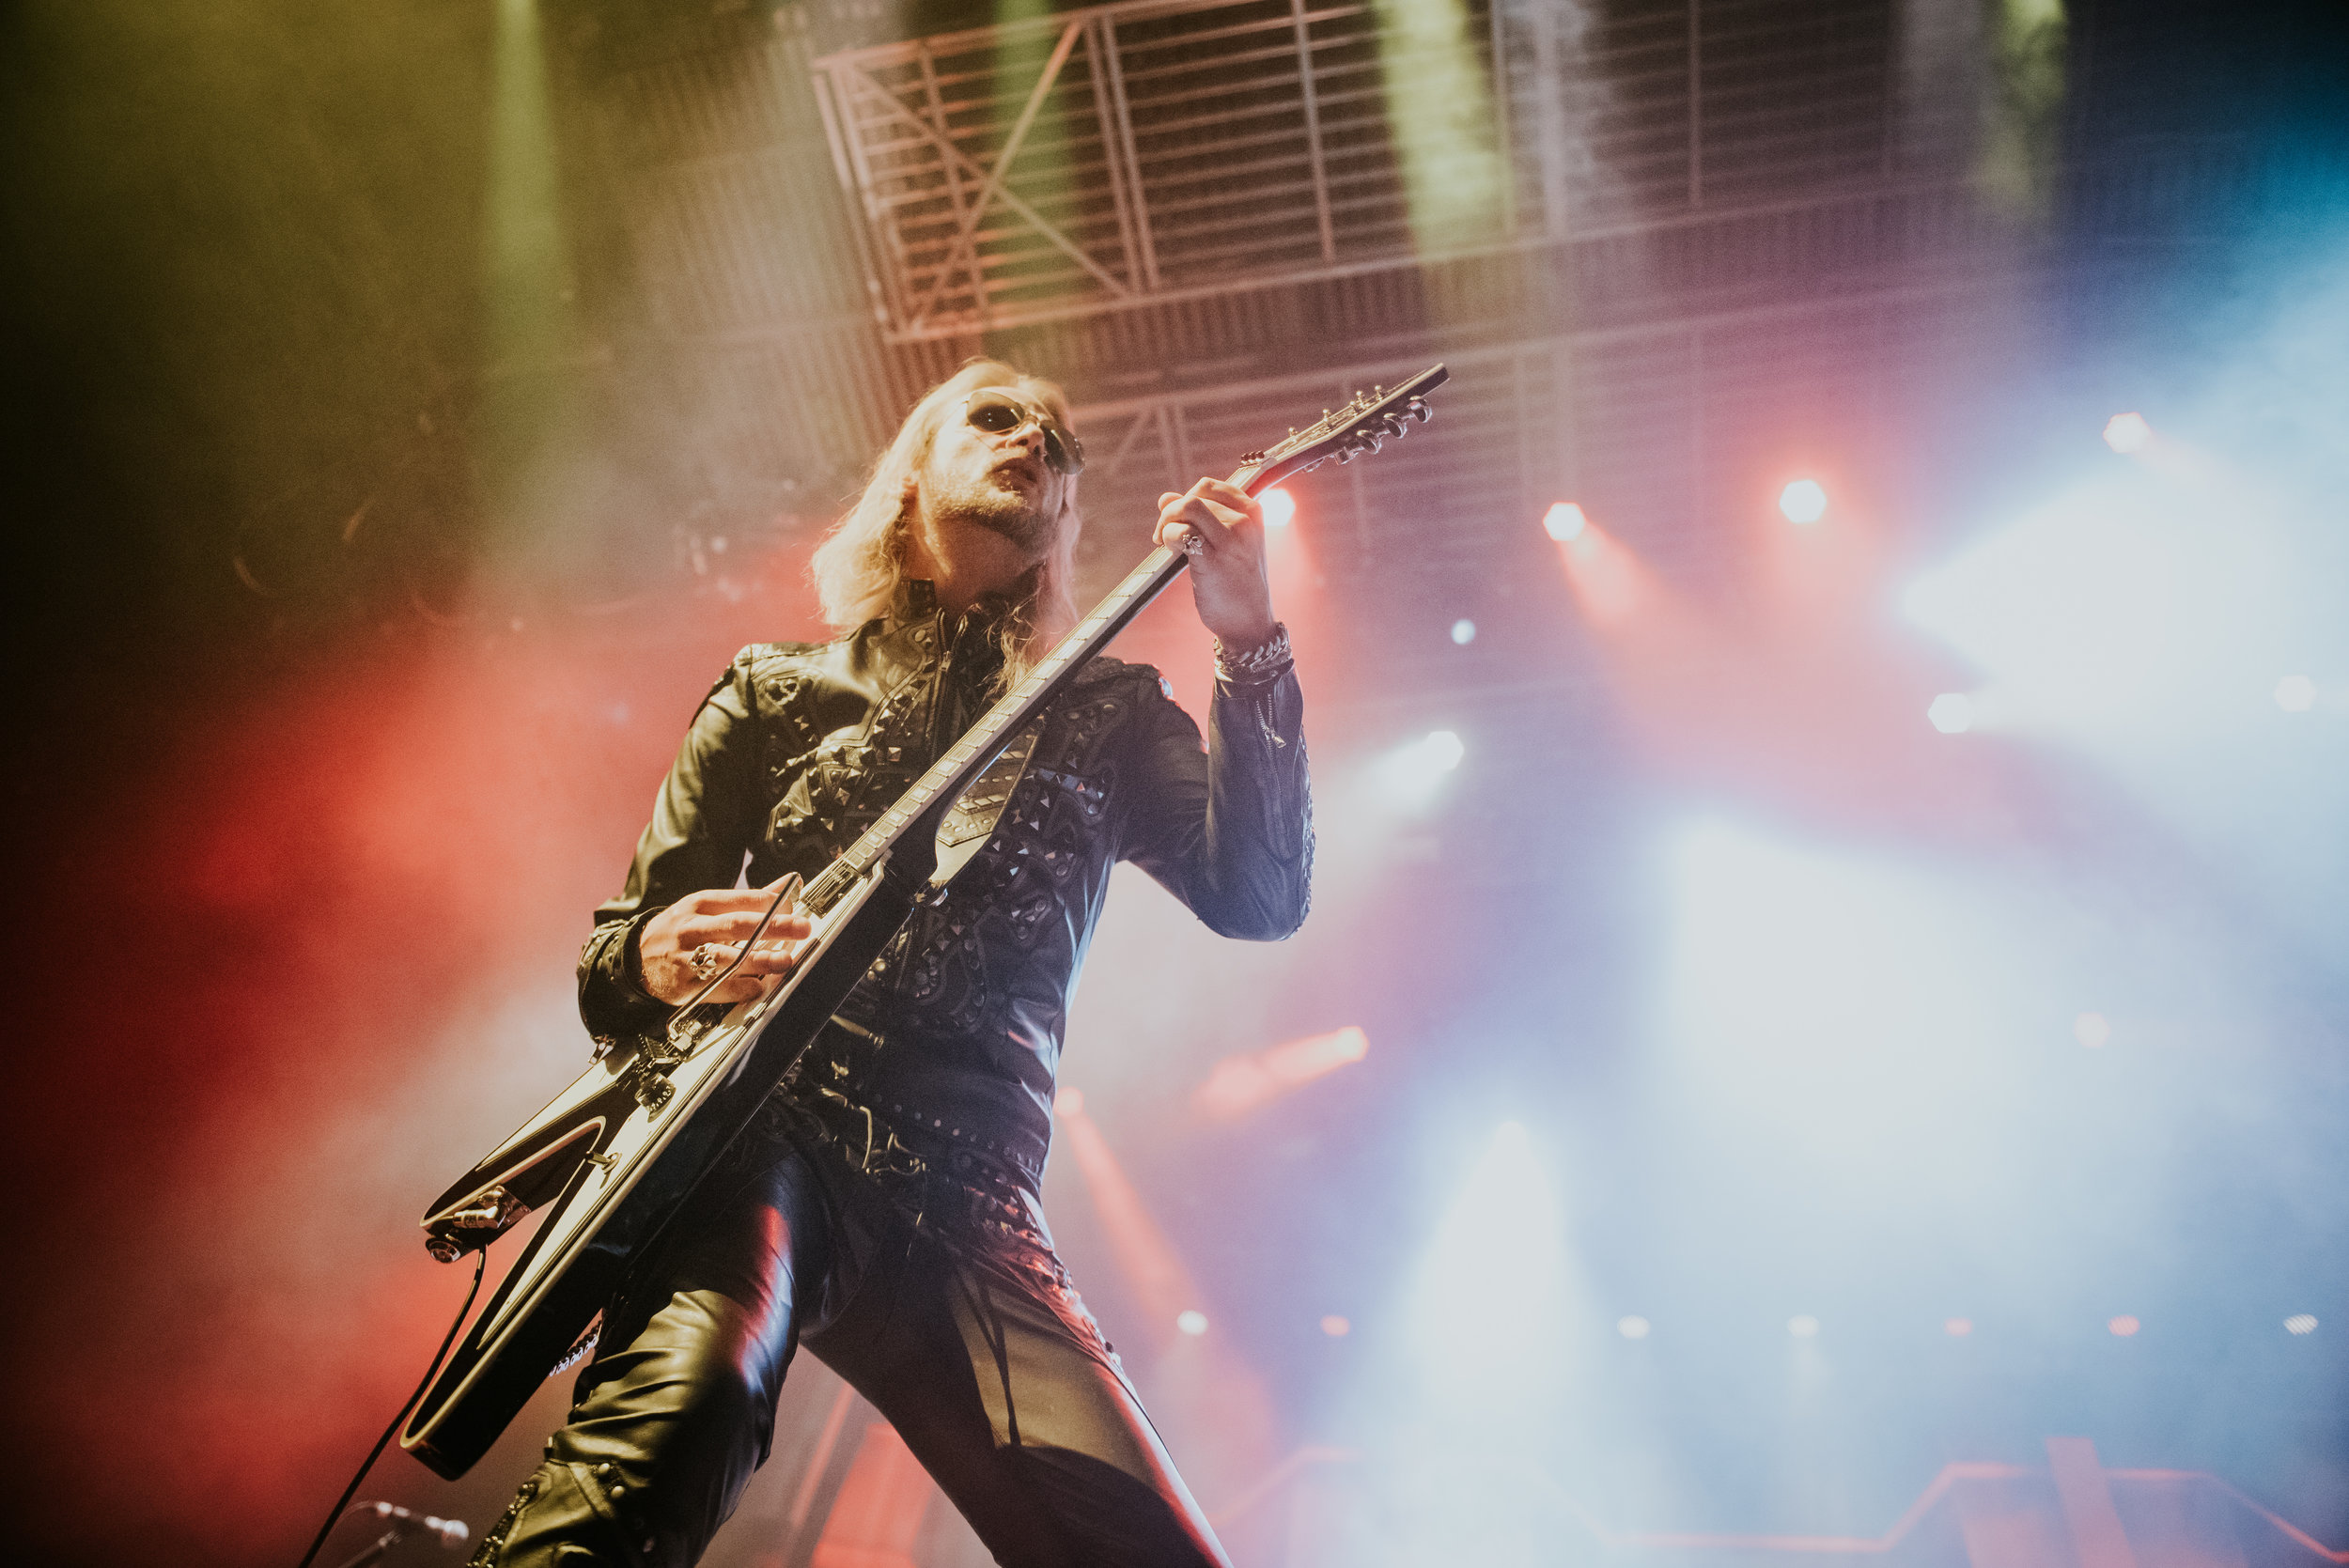 Judas Priest - Print-33.jpg